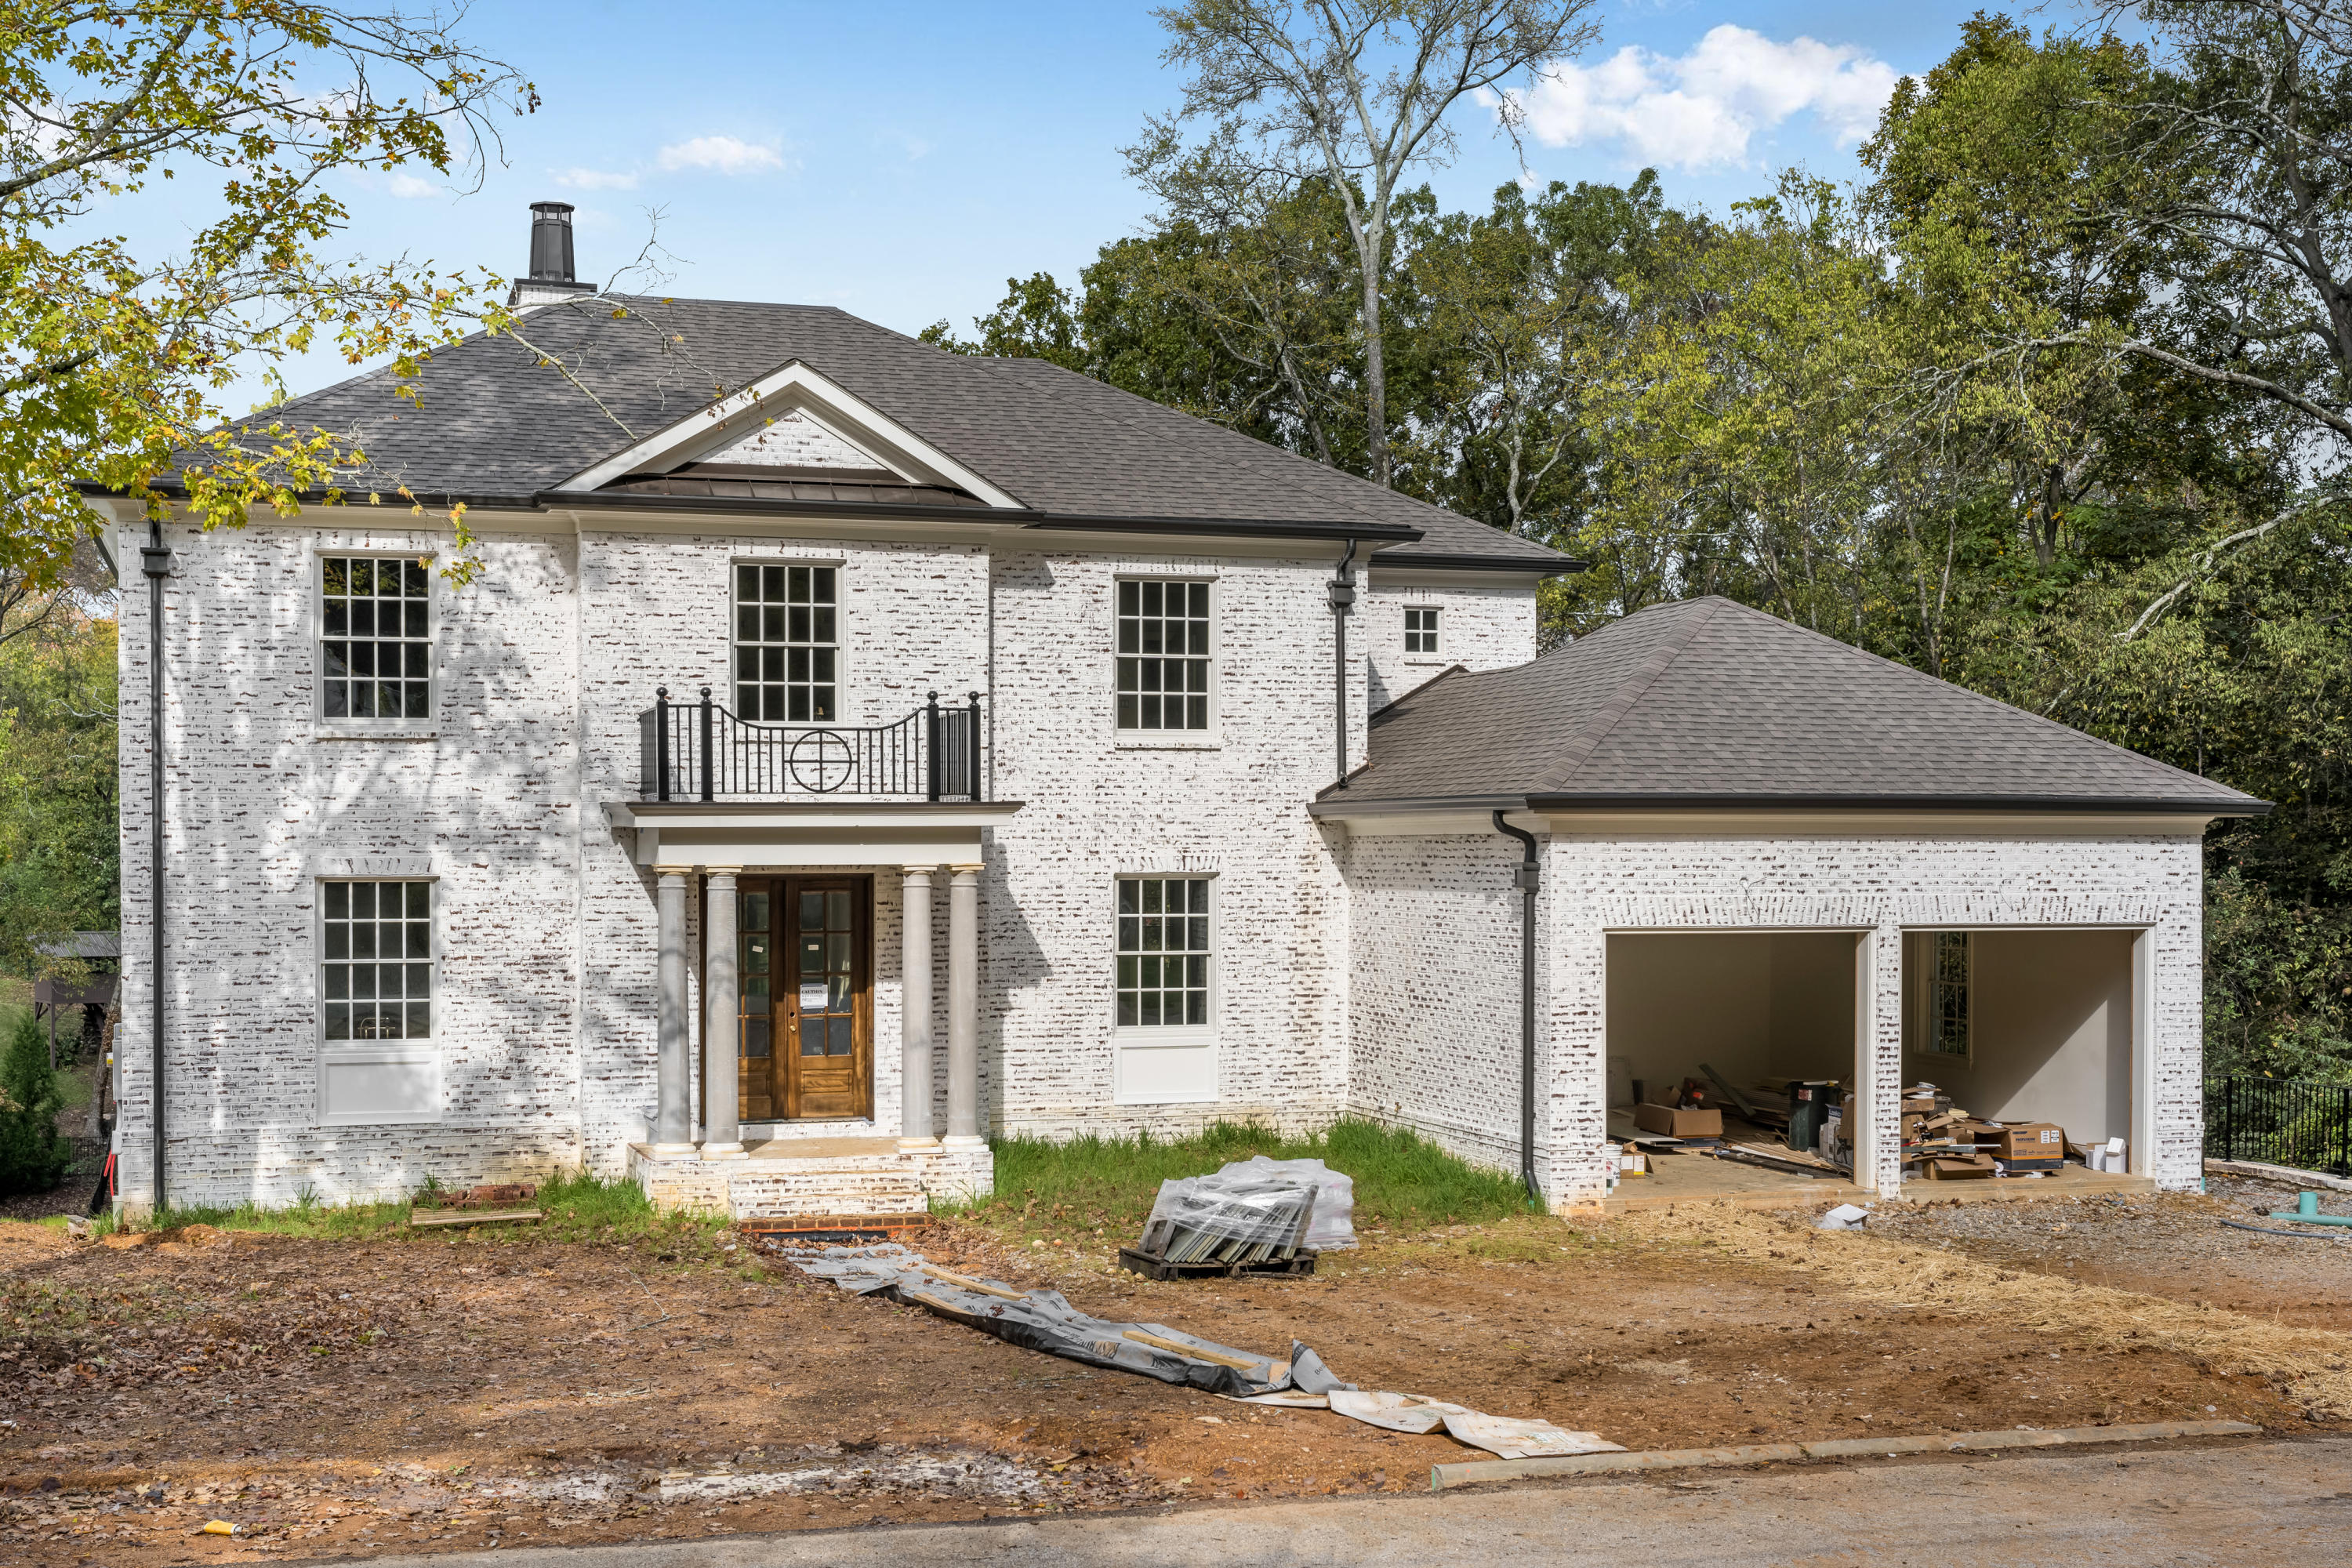 Details for 1321 Lawrence, Chattanooga, TN 37405